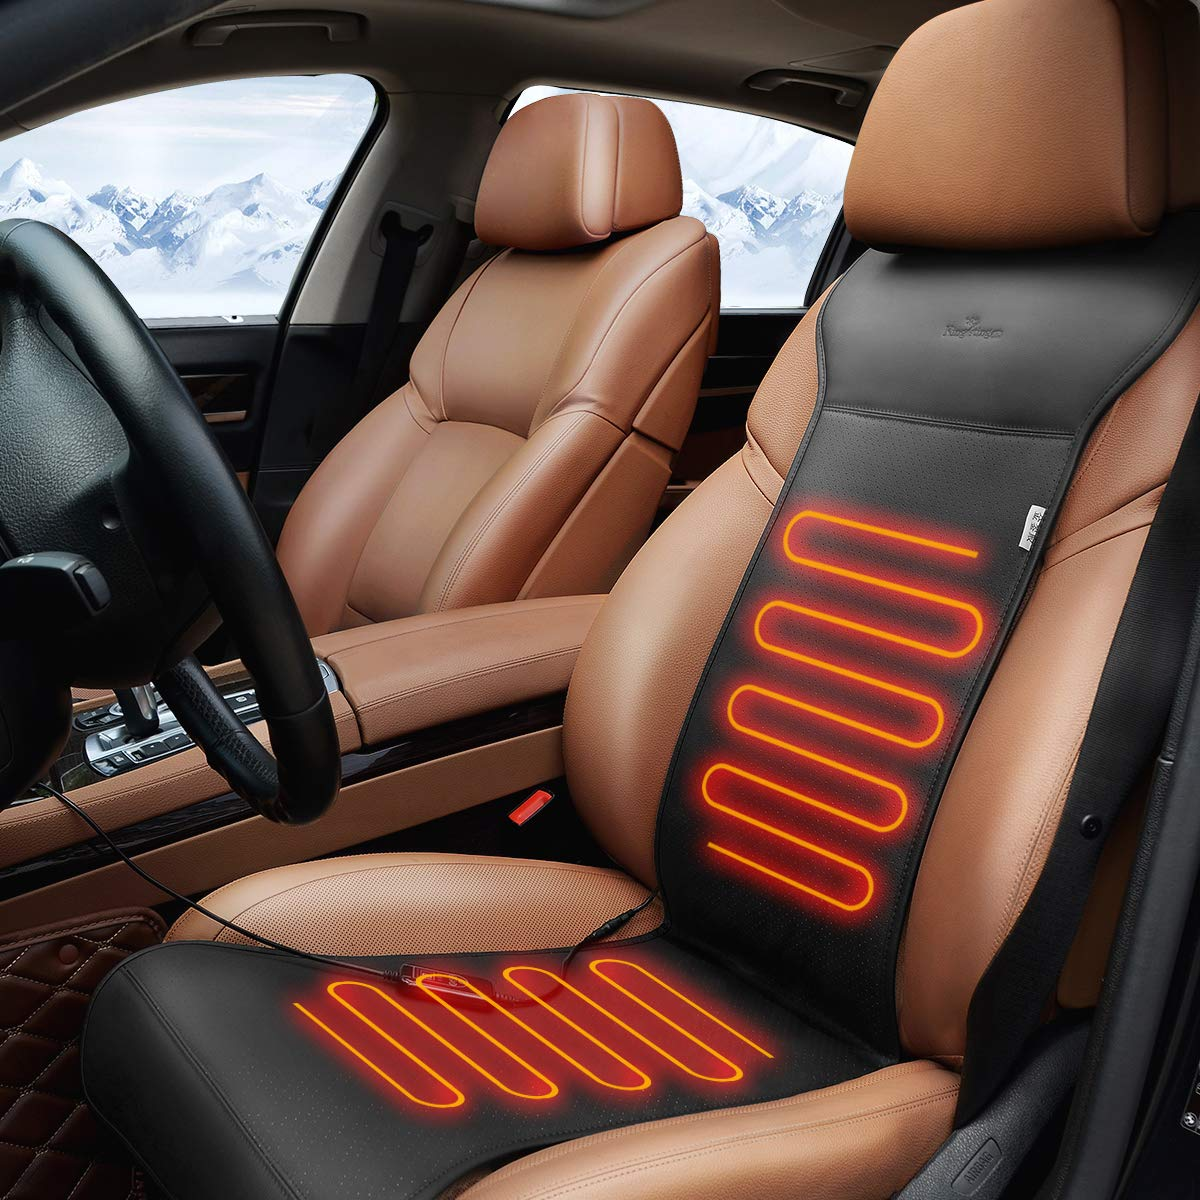 KINGLETING 12-Volt Heated Seat Cover with Intelligent Temperature Controller